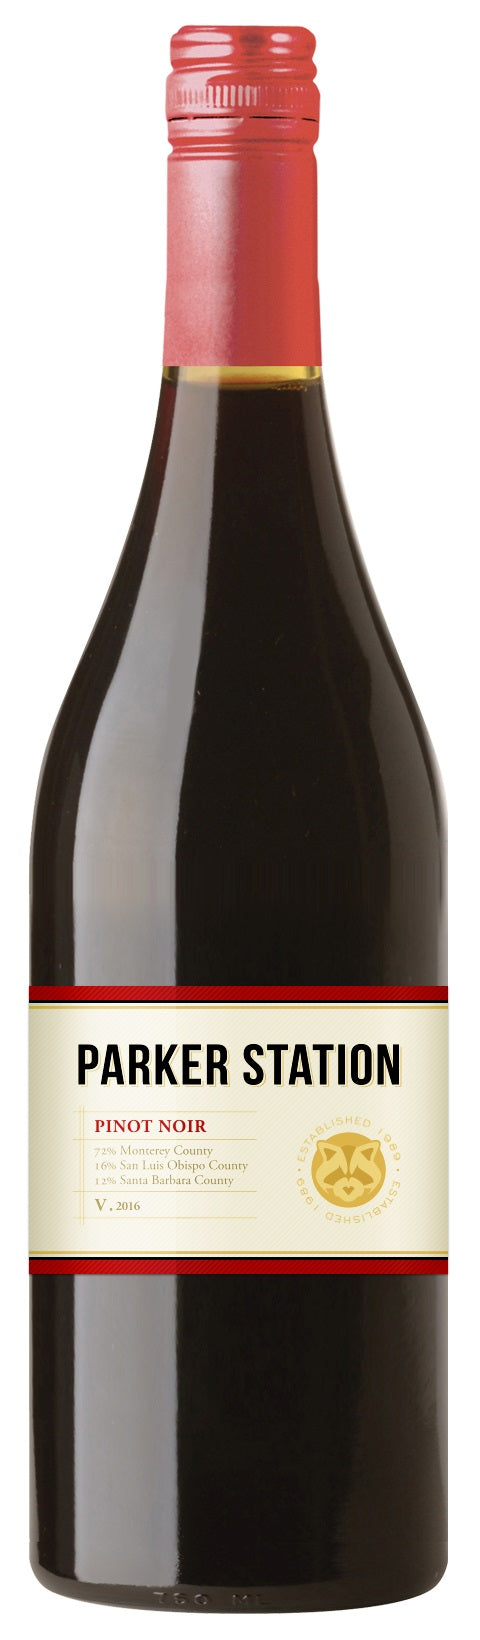 Parker Station Pinot Noir, California, USA